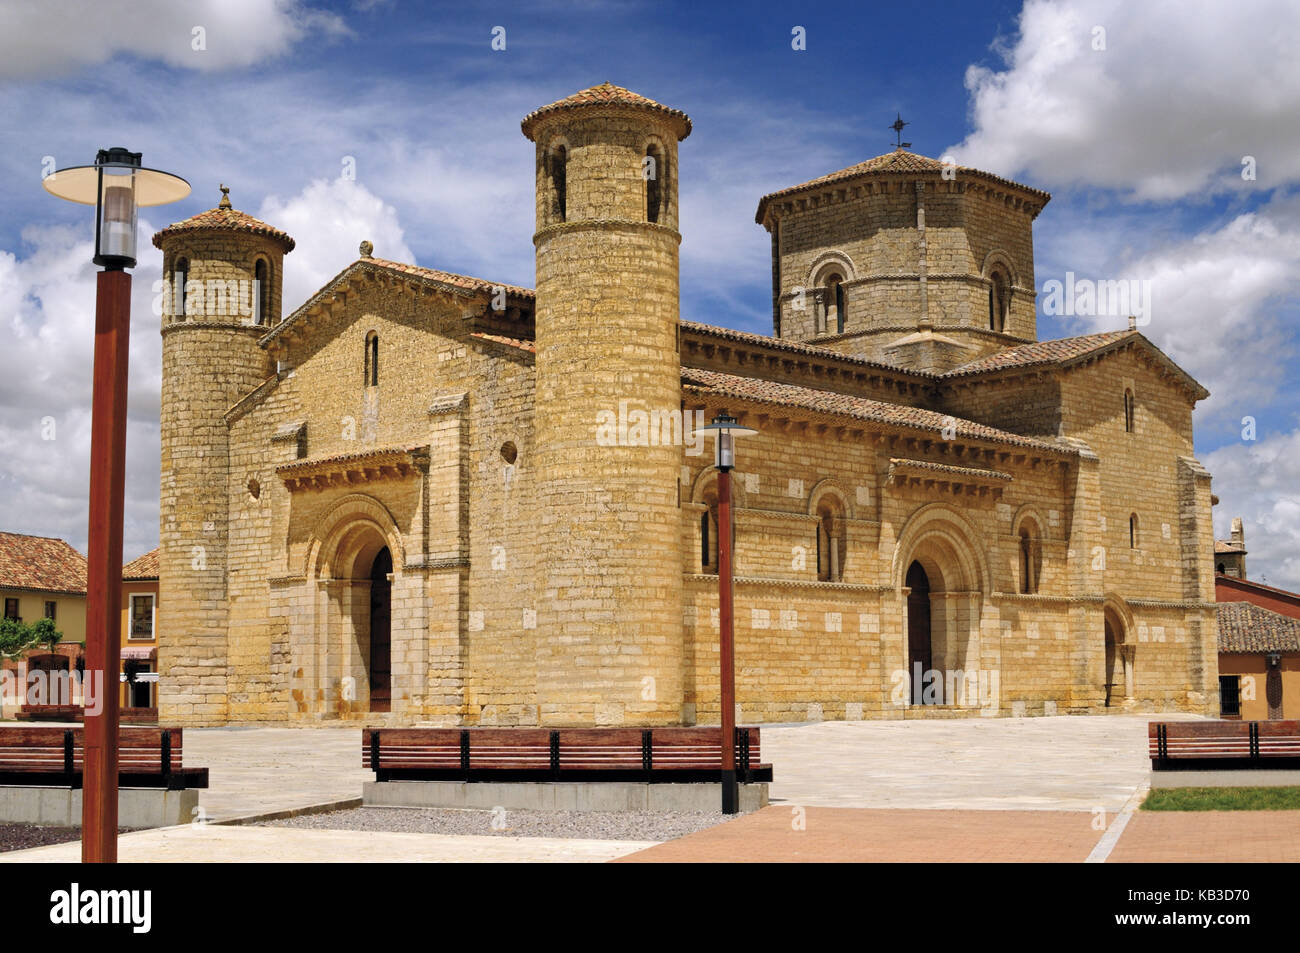 Spain, Kastilien-Leon, Romanesque church San Martin in Fromista, - Stock Image